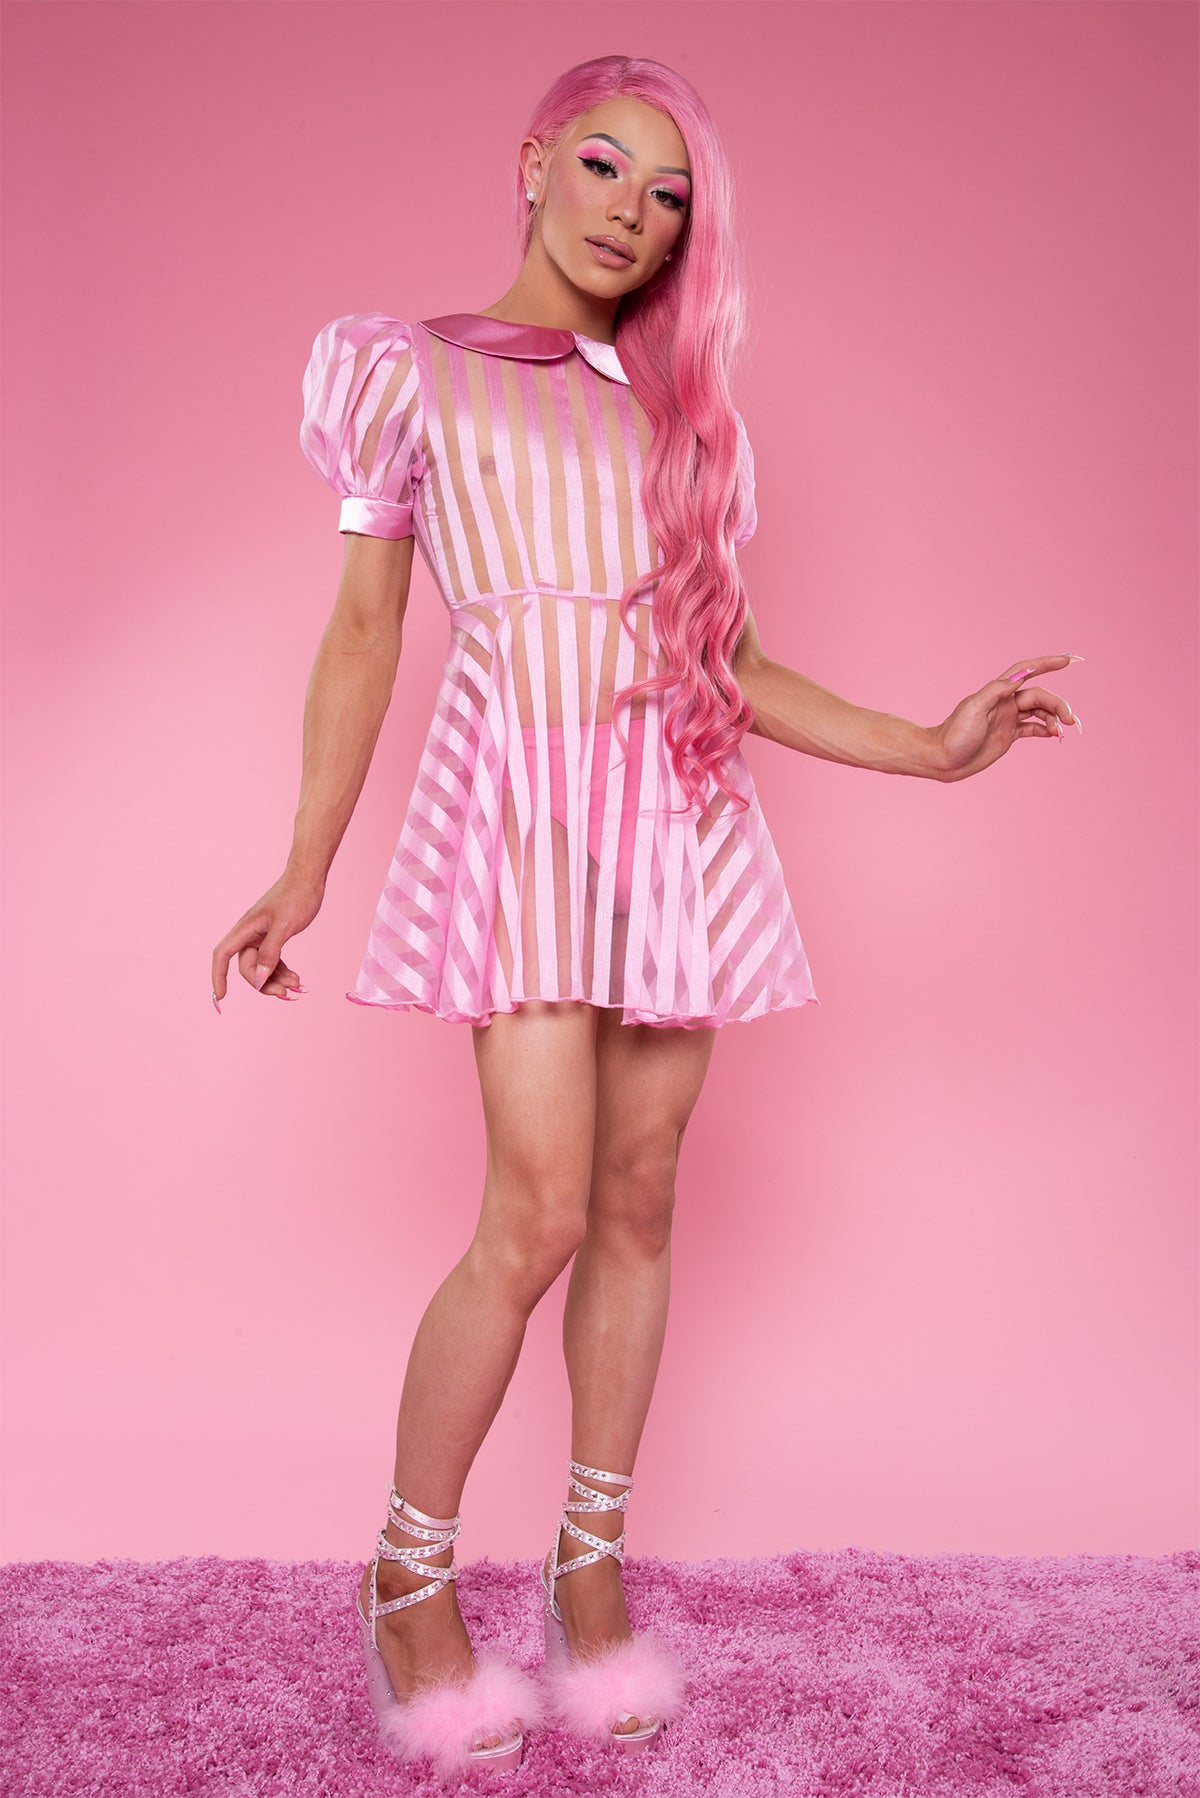 Candy Striper Sheer Dress